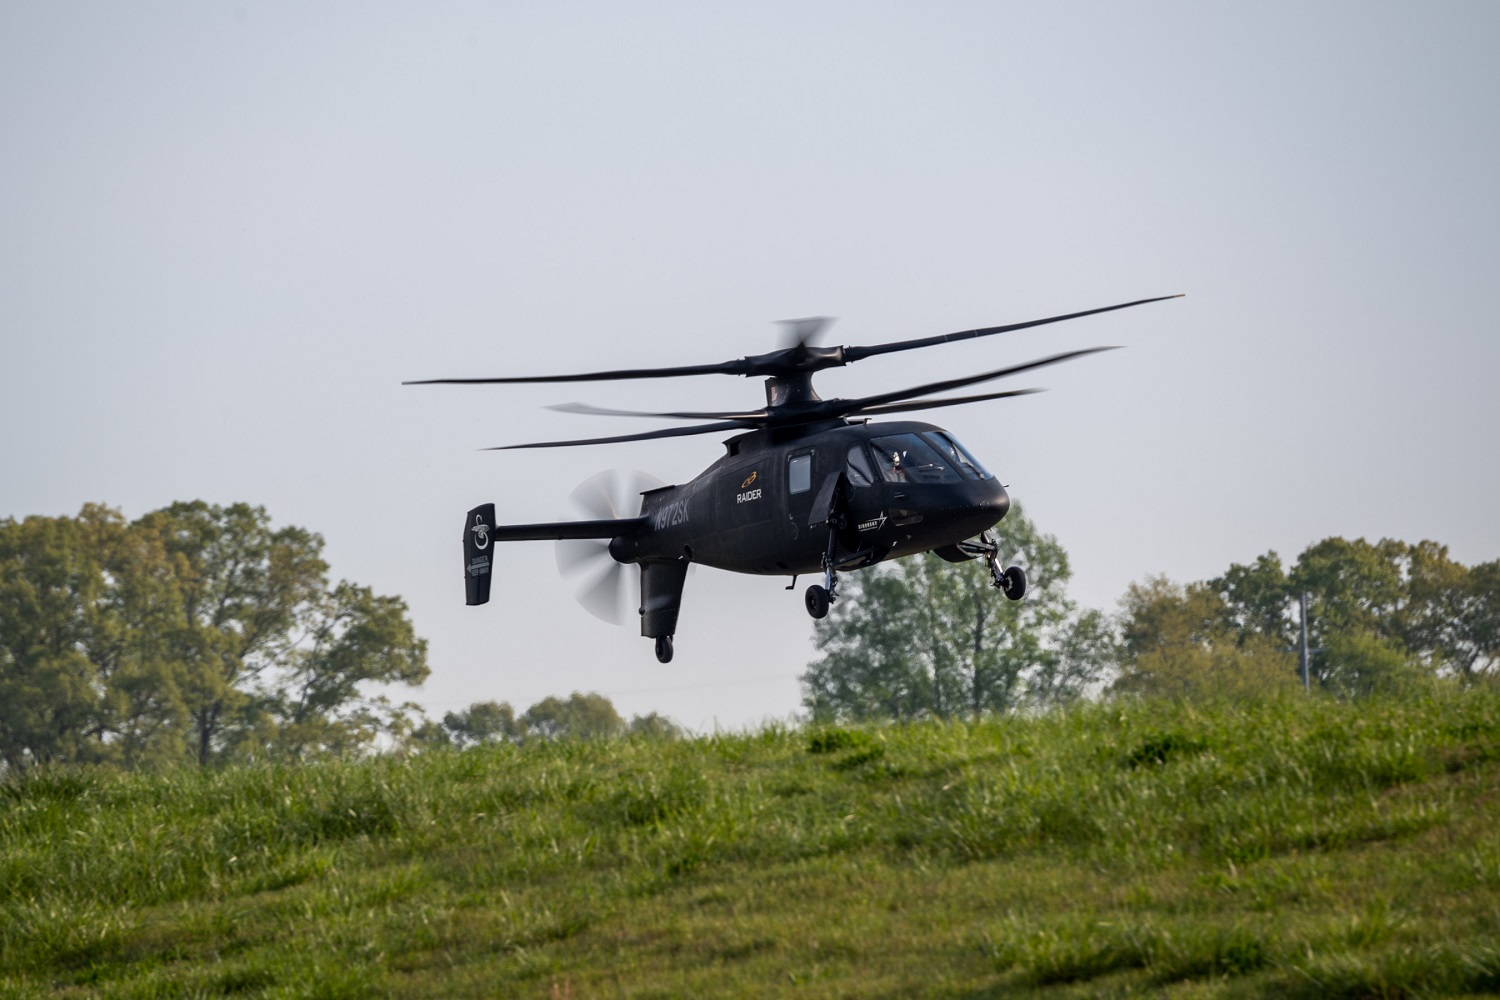 Lockheed Martin Demos Sikorsky S-97 RAIDER Raider Helicopter for US Army